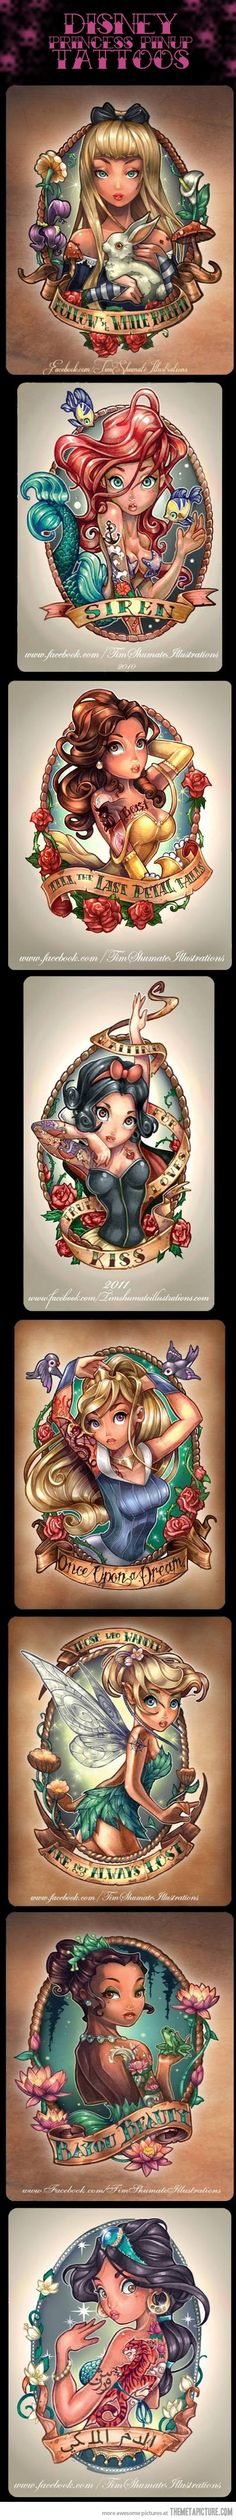 these wouldn't be bad for a pin up style